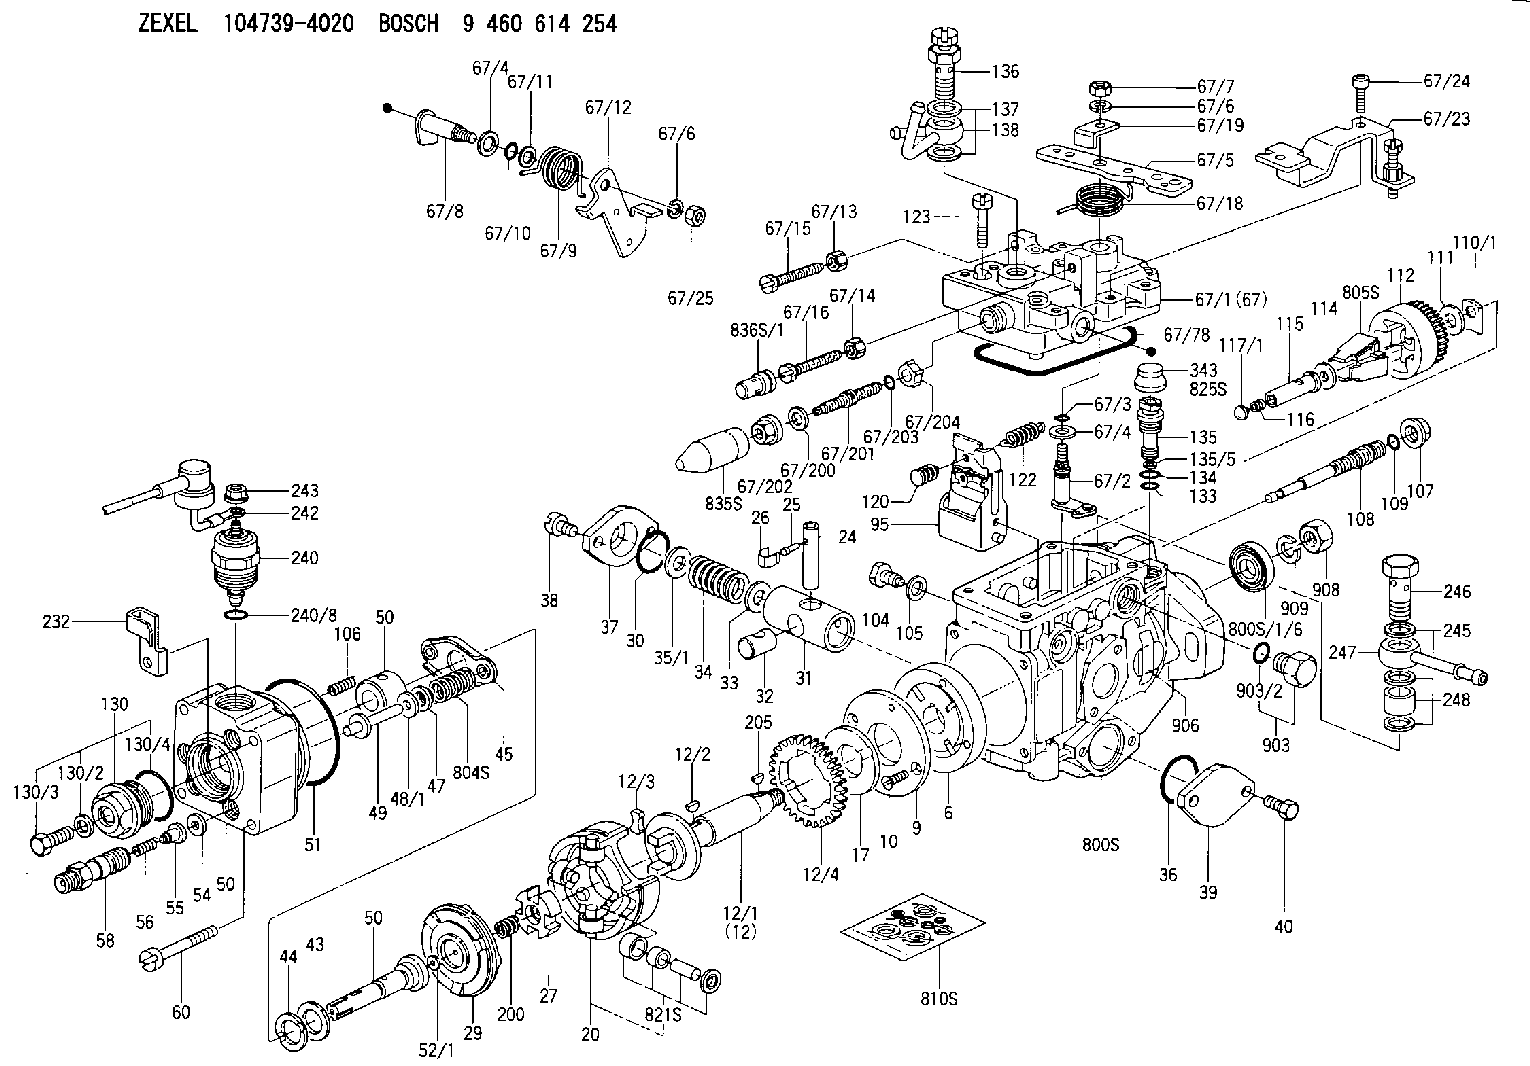 medium resolution of 104739 4020 zexel injection pump assembly